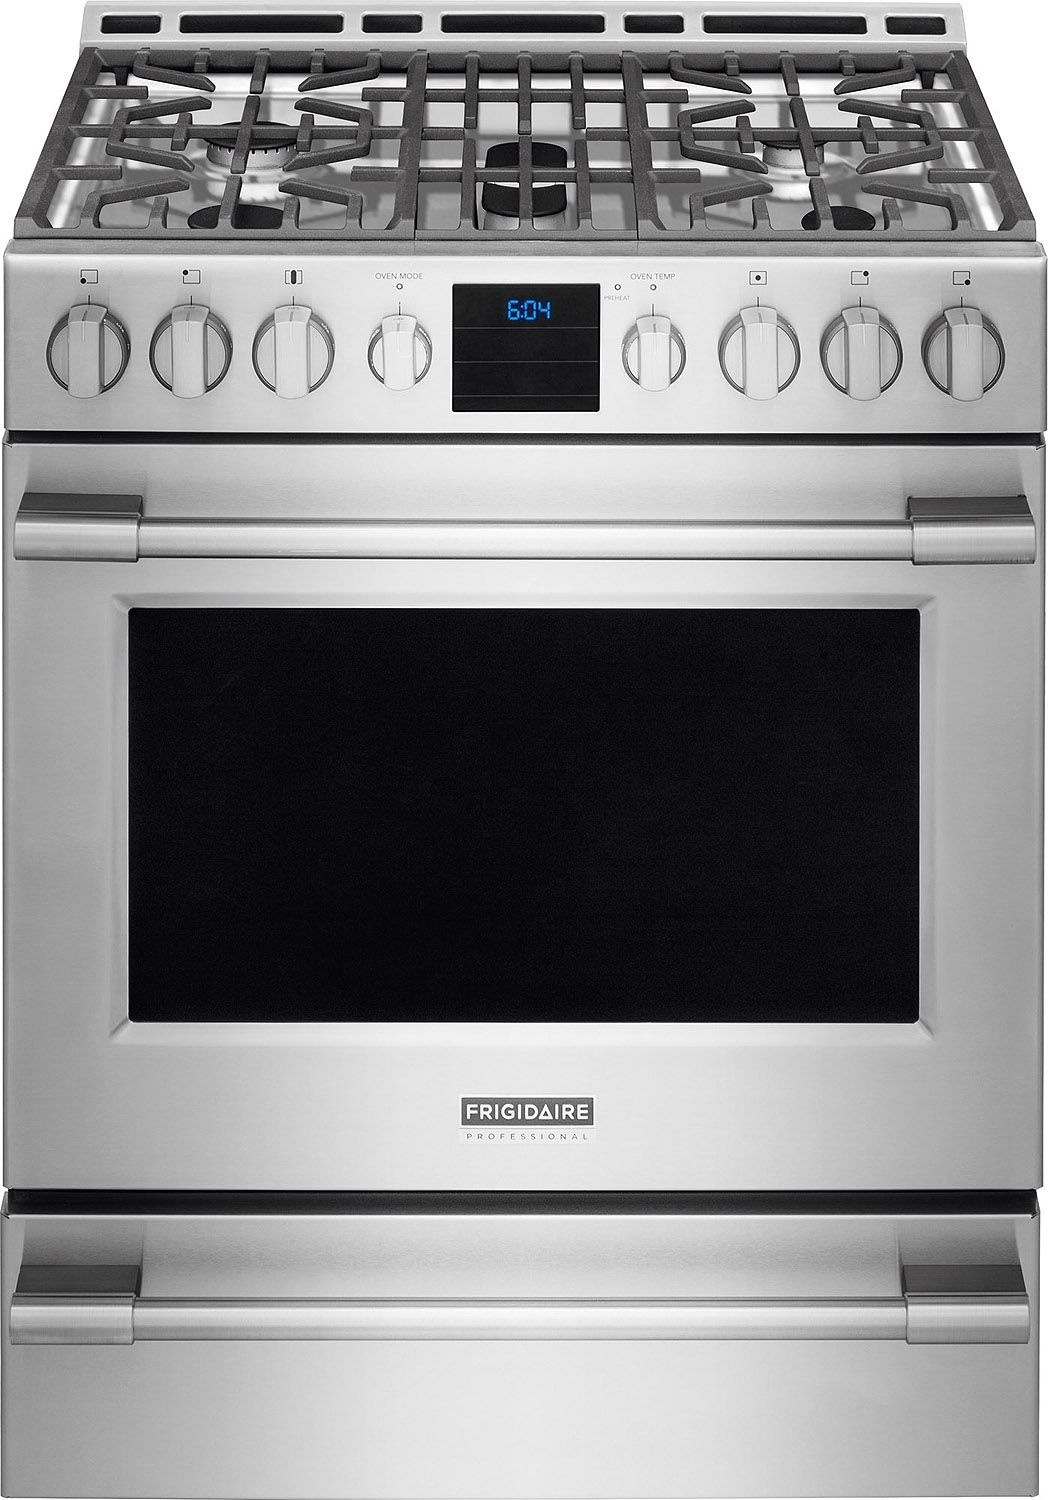 Frigidaire Professional Stainless Steel Freestanding Gas Range - Abt gas ranges